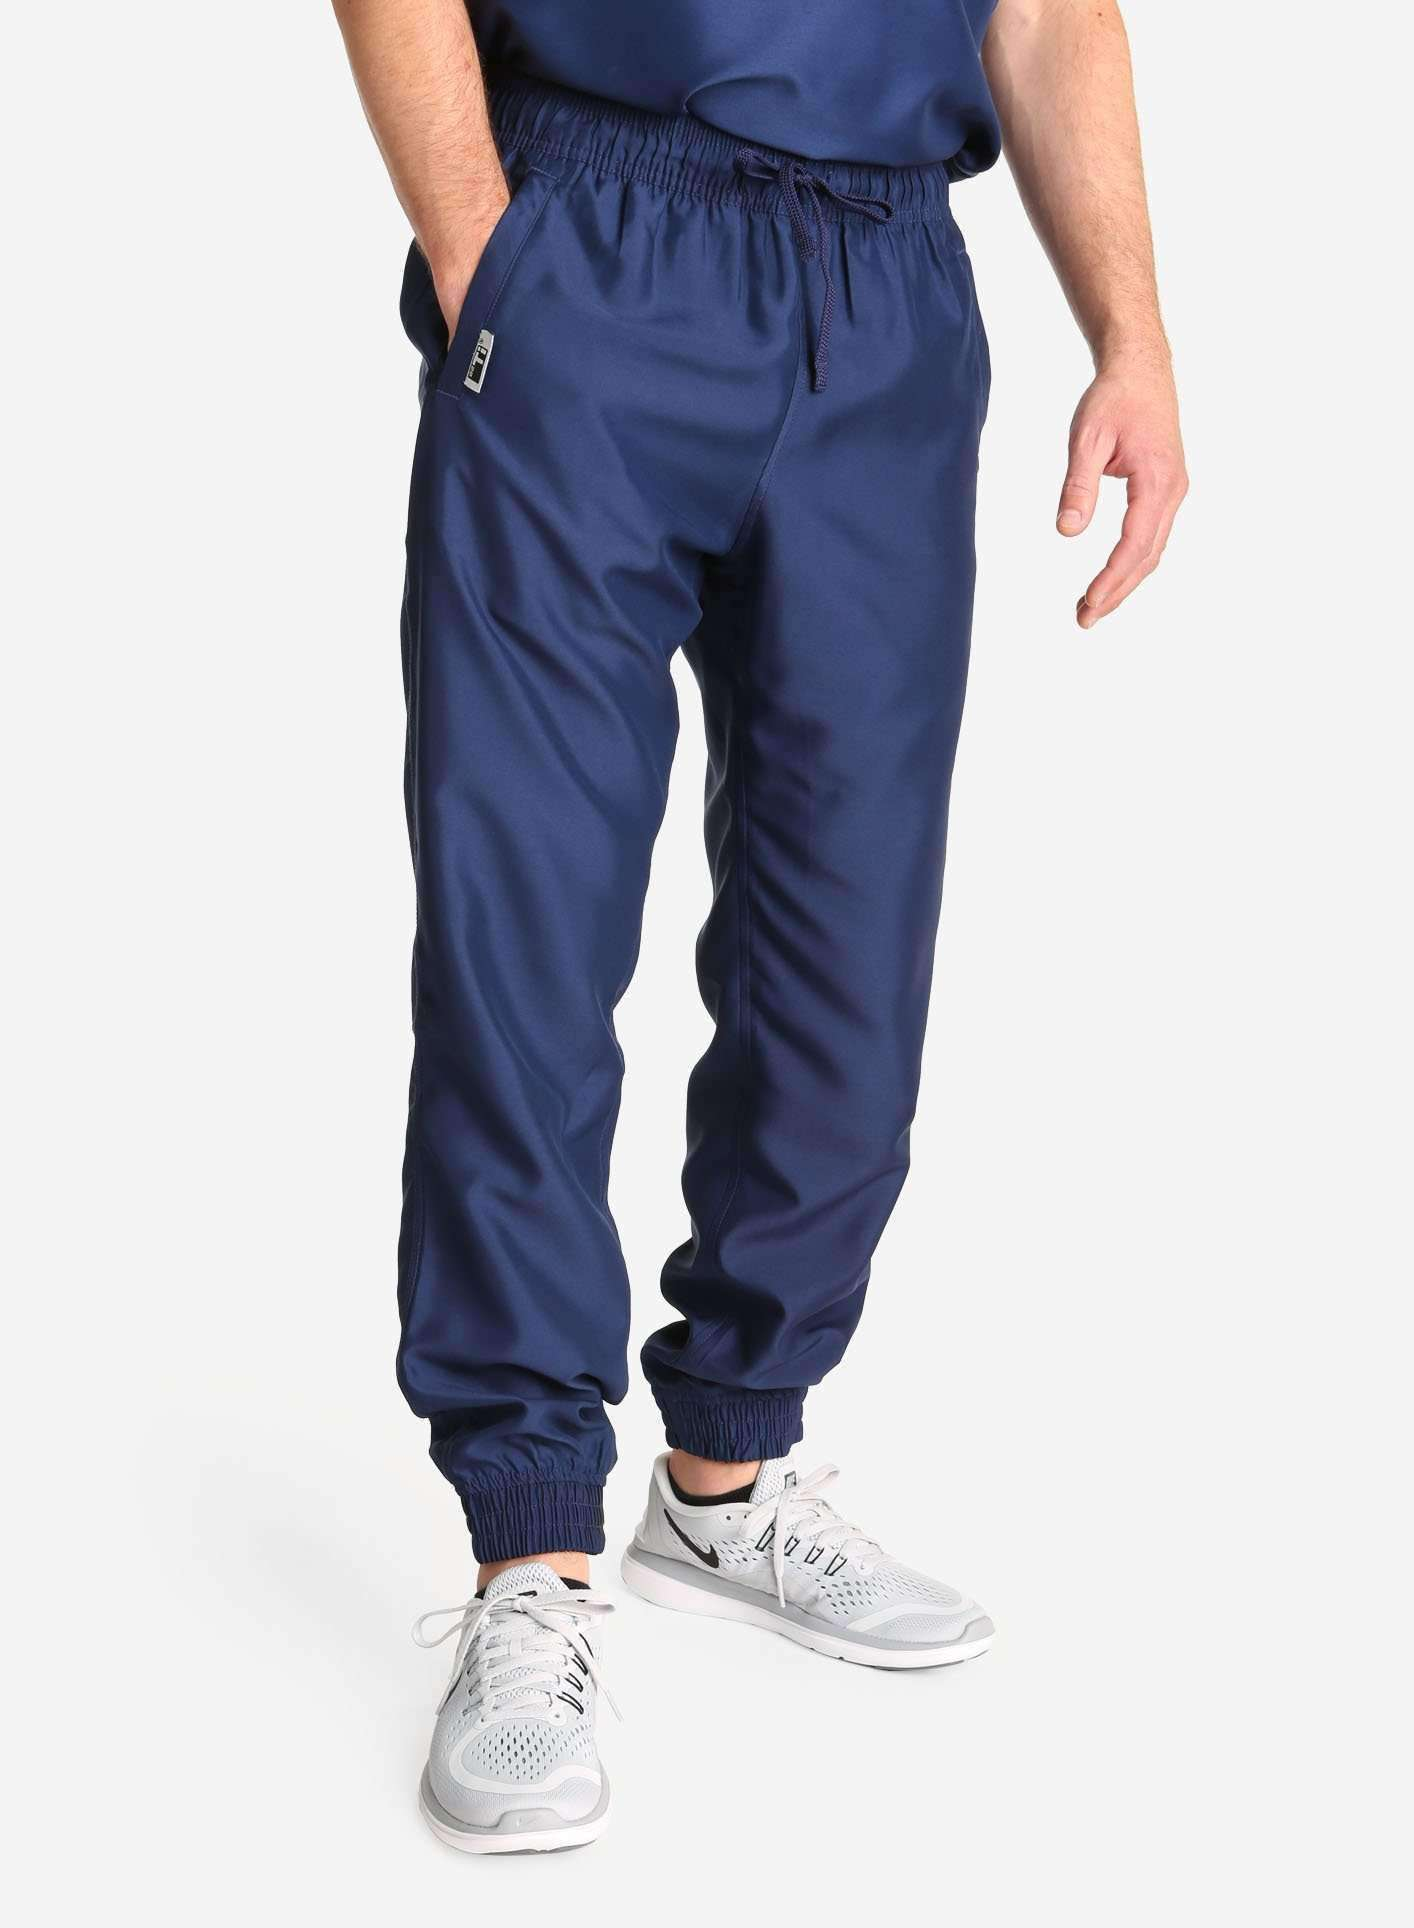 Men's Jogger Scrub Pants in Navy